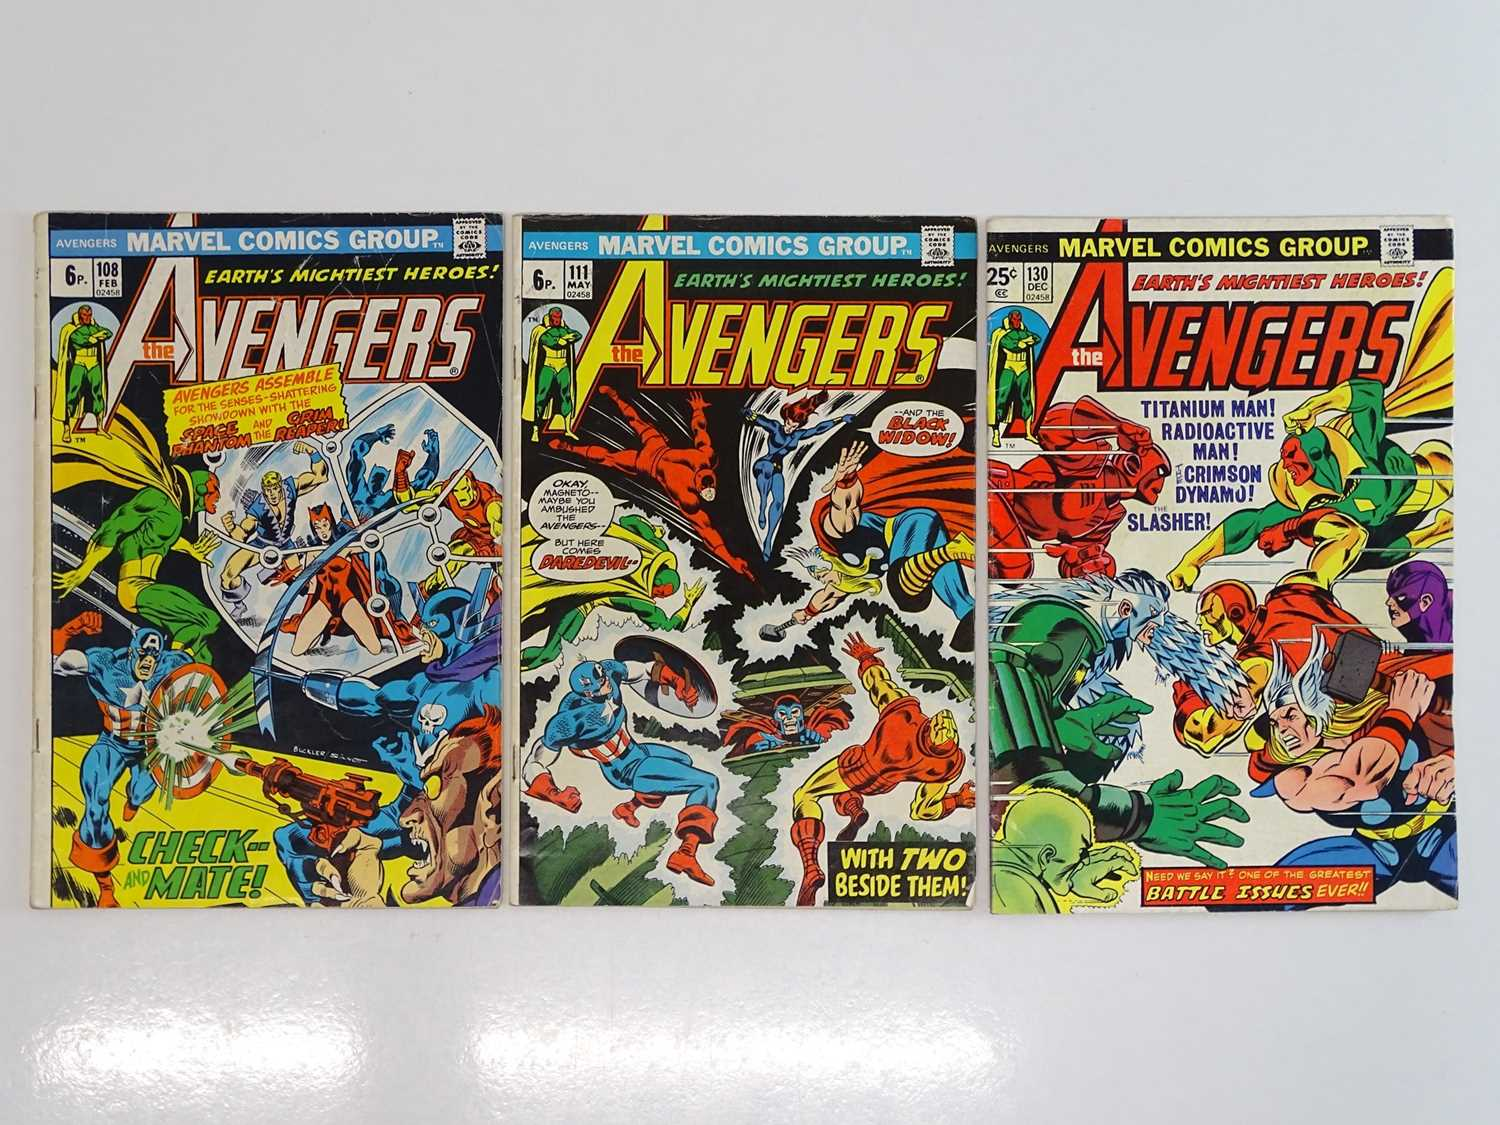 AVENGERS #108, 111, 130 - (3 in Lot) - (1973/74 - MARVEL - US Price & UK Price Variant) - Includes